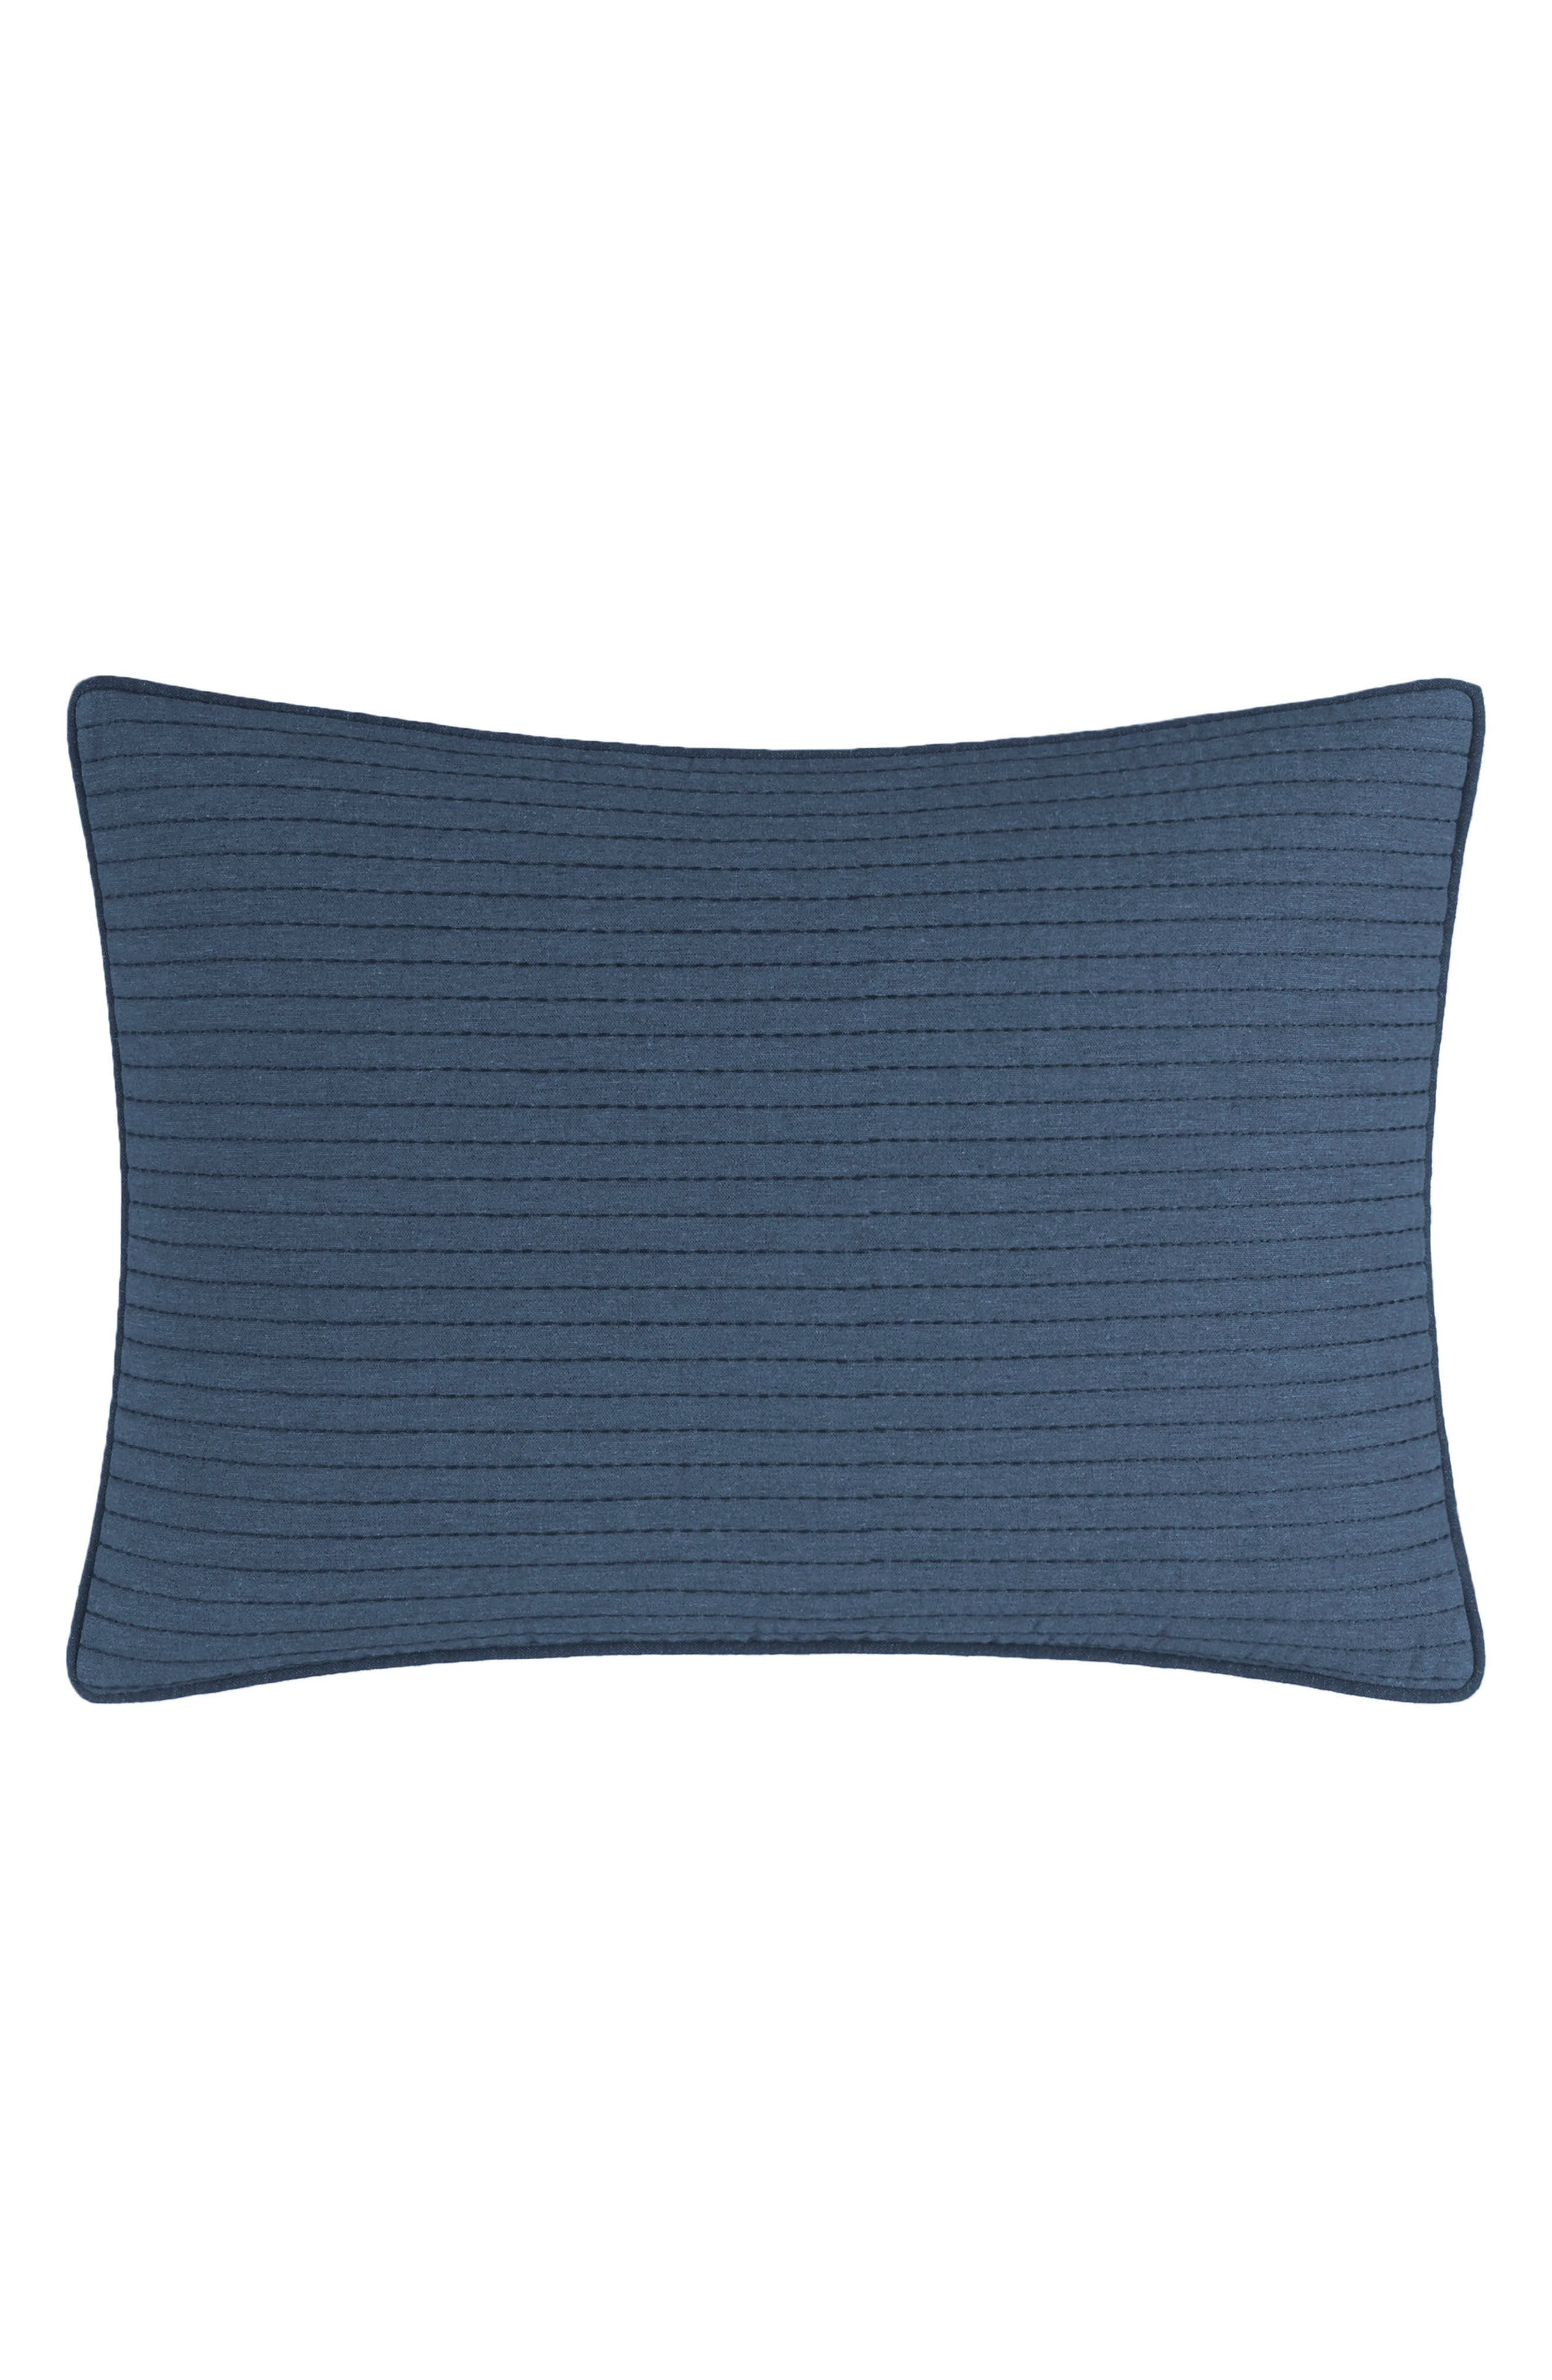 Alternate Image 1 Selected - Nautica Lockridge Quilted Accent Pillow